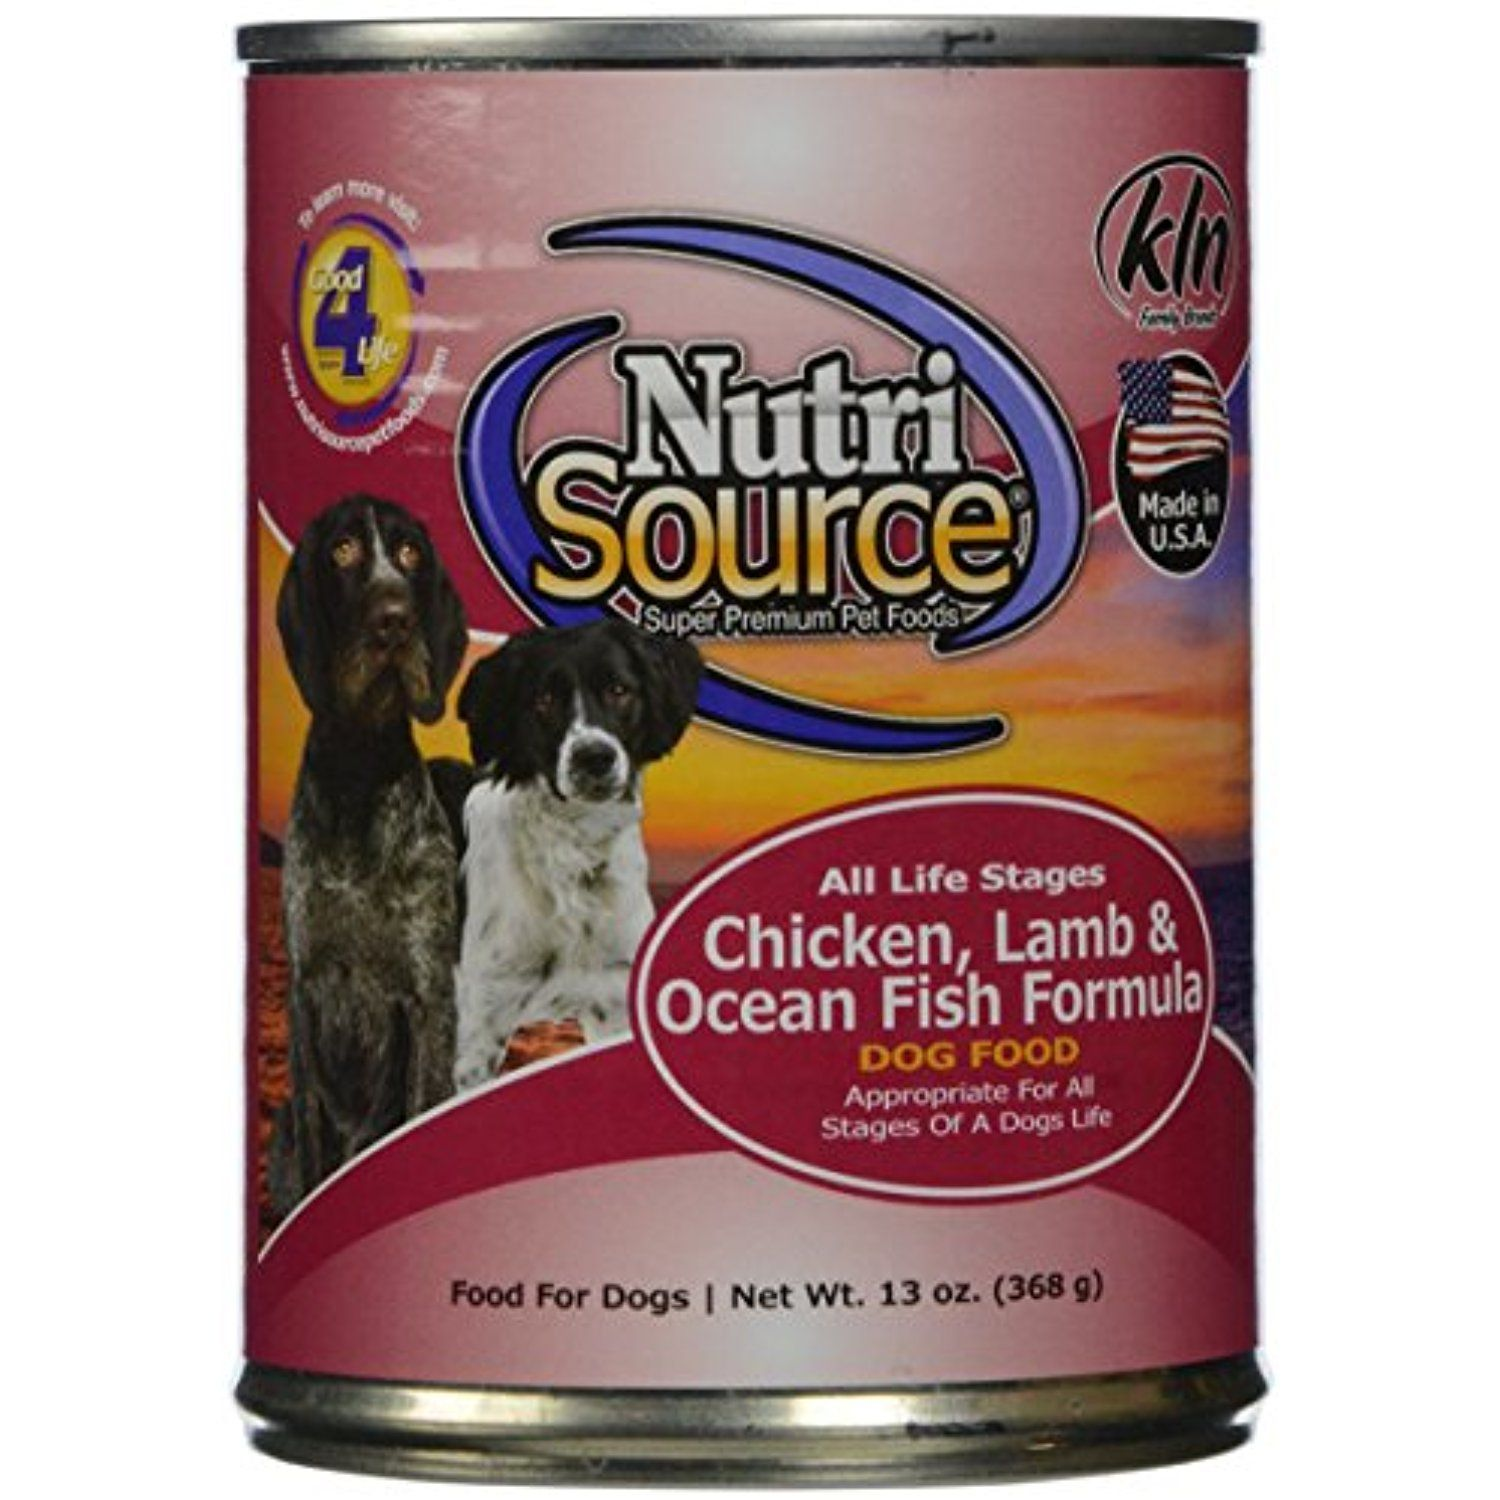 Nutrisource, Canned Dog Food, Chicken, Lamb & Fish, 13 oz